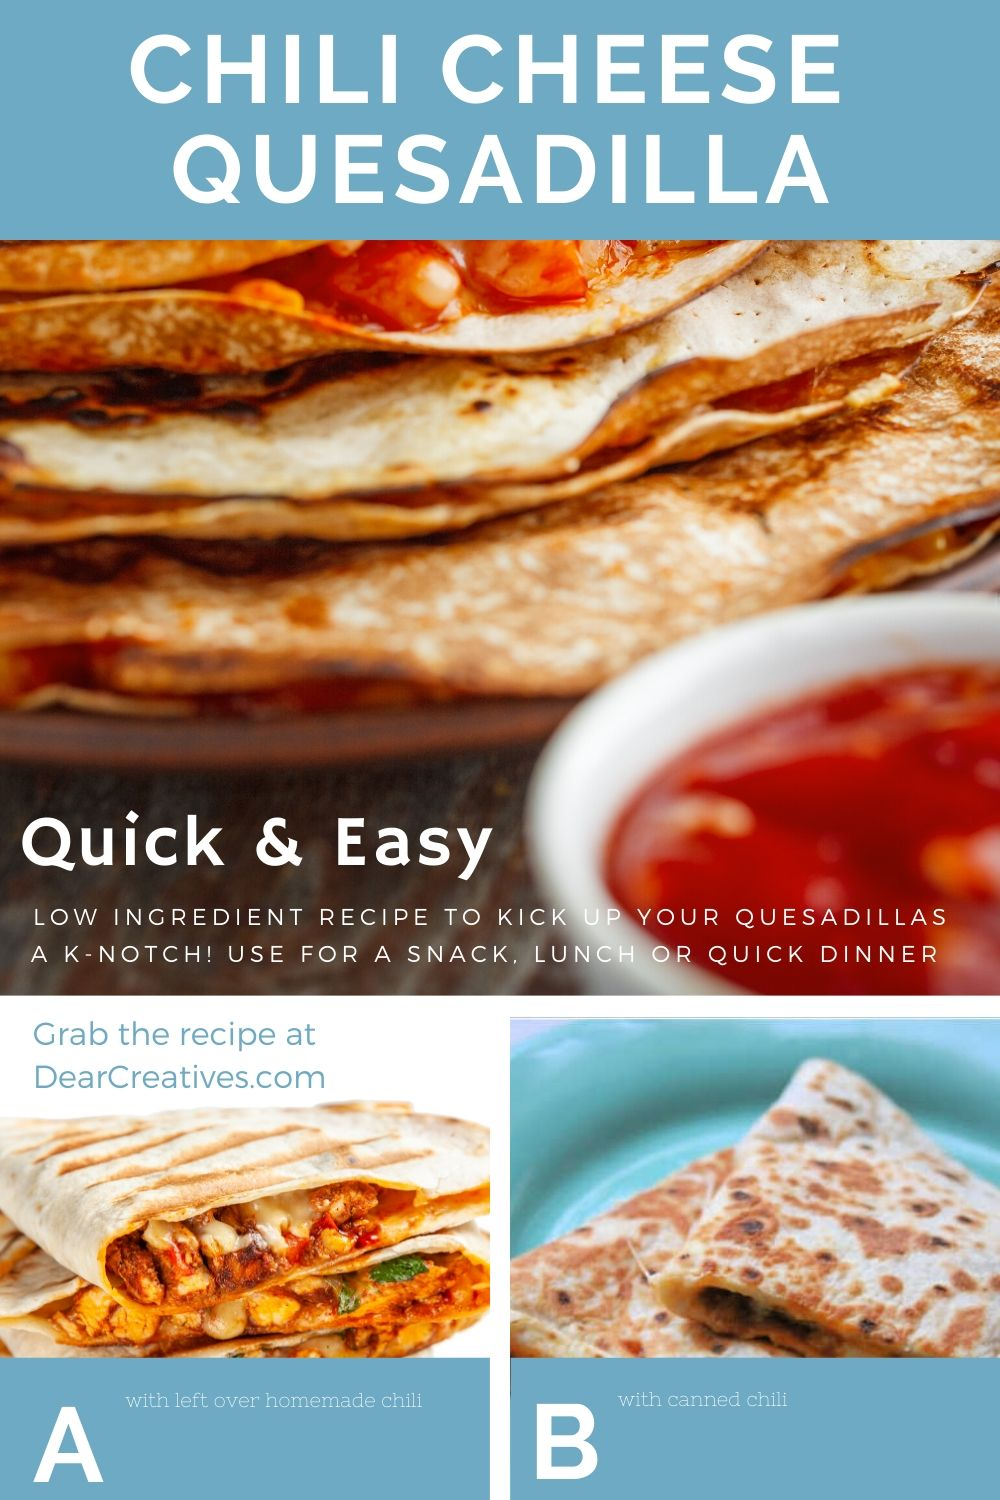 Chili Cheese Quesadillas Are So Easy To Make!